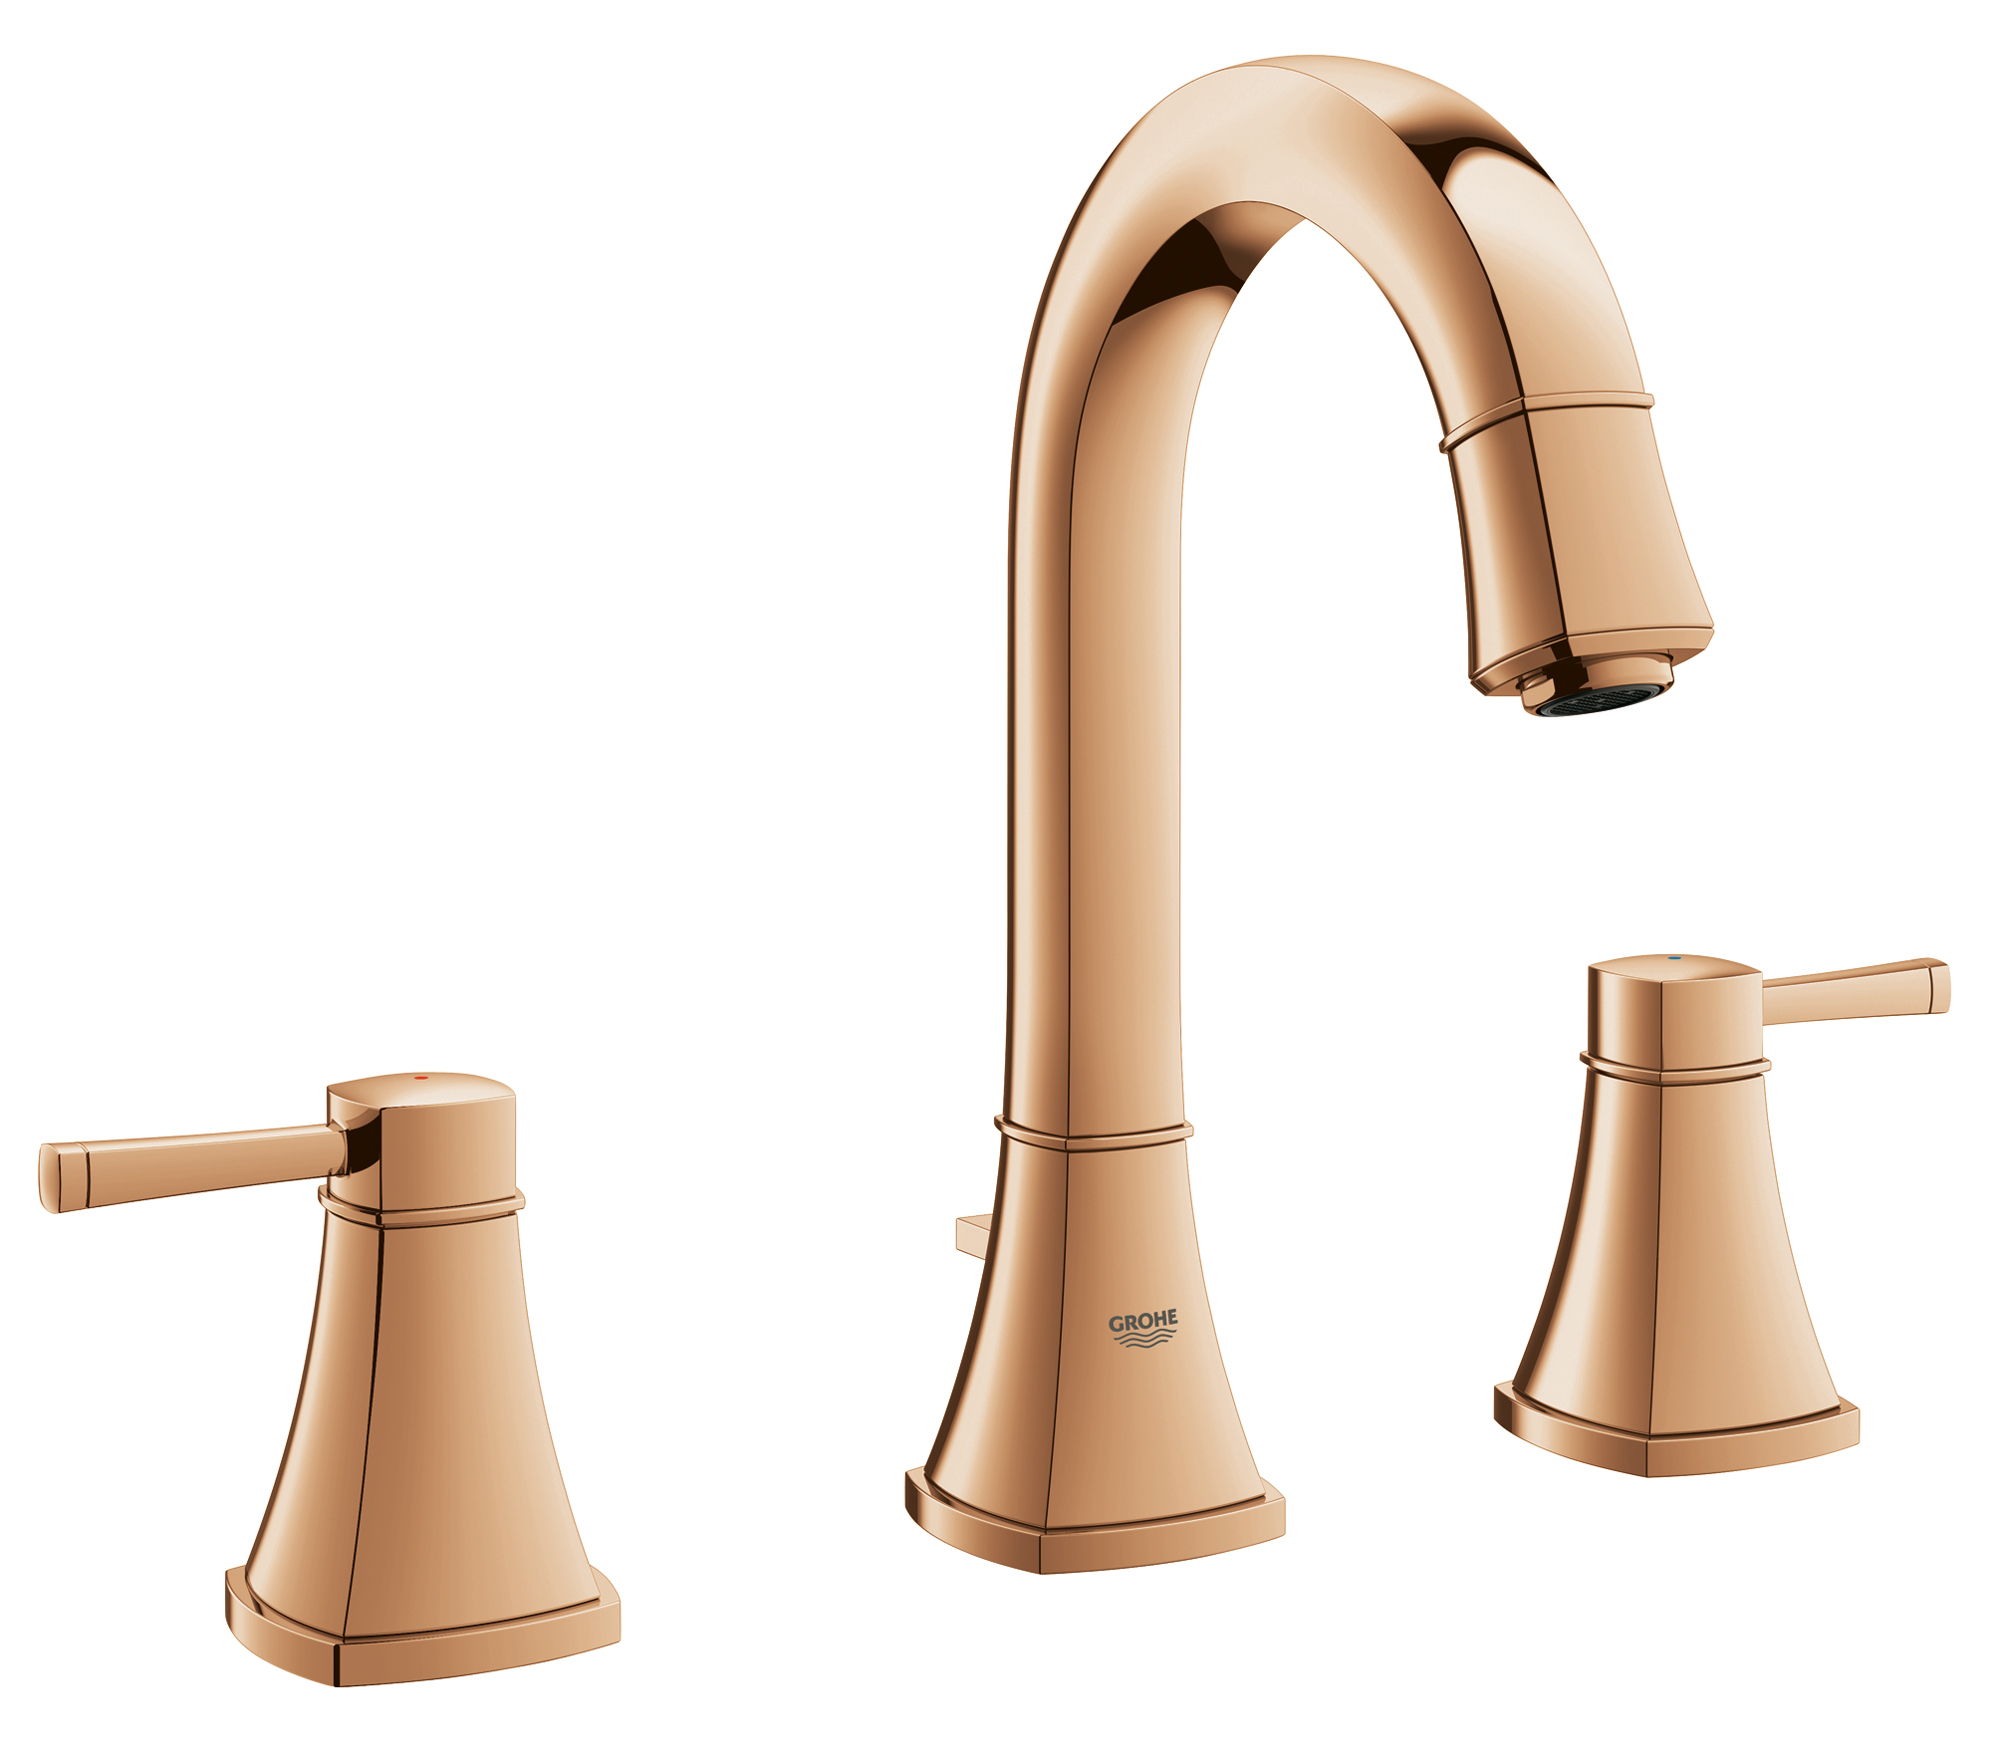 touch faucet kitchen nyc soup kitchens grohe adds feminine with rose gold finish | jlc ...